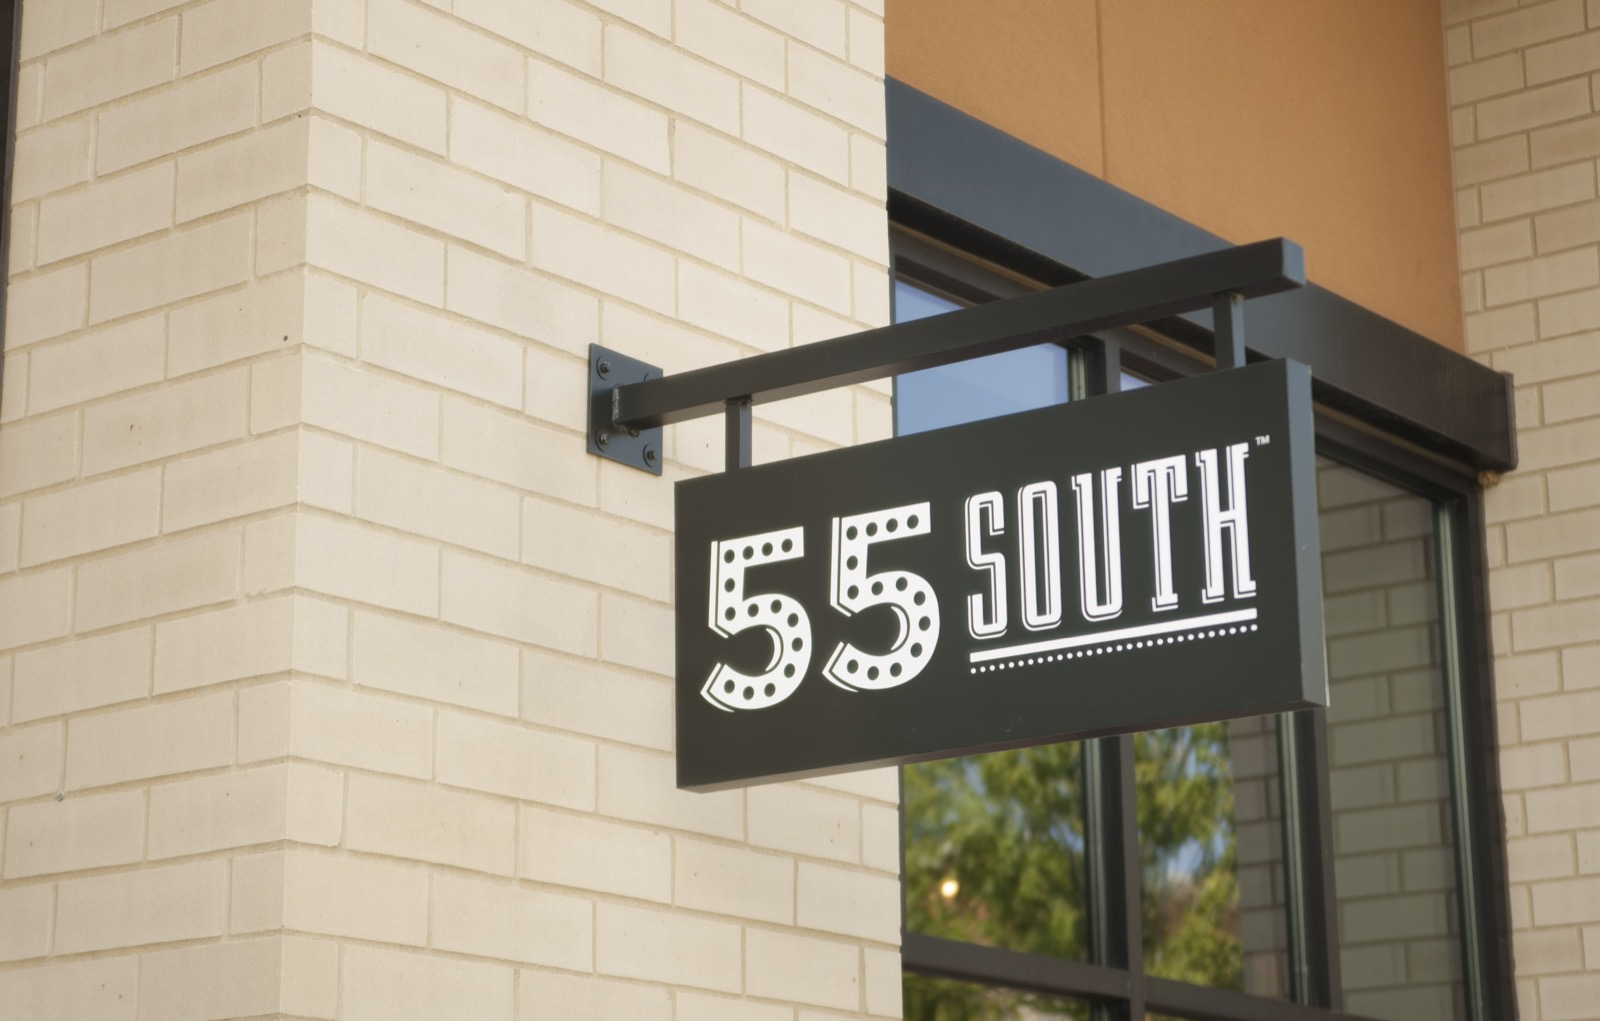 /projects/55-south/